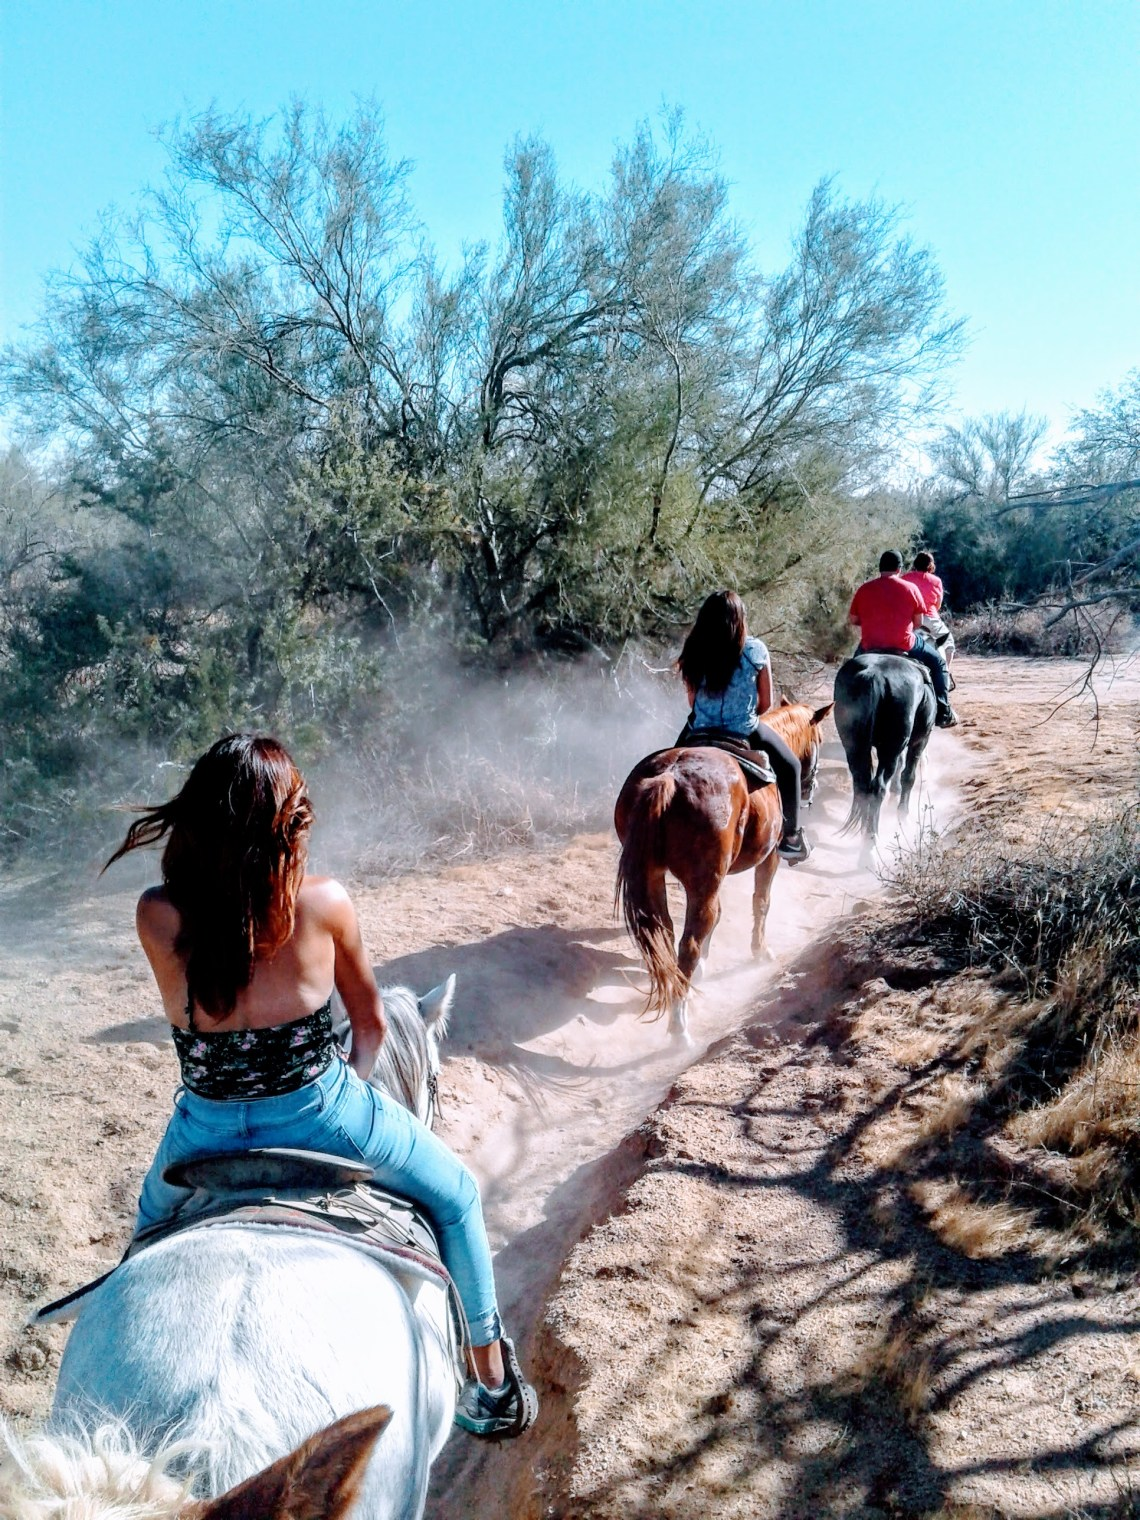 View of family riding horses on dusty trail from the back